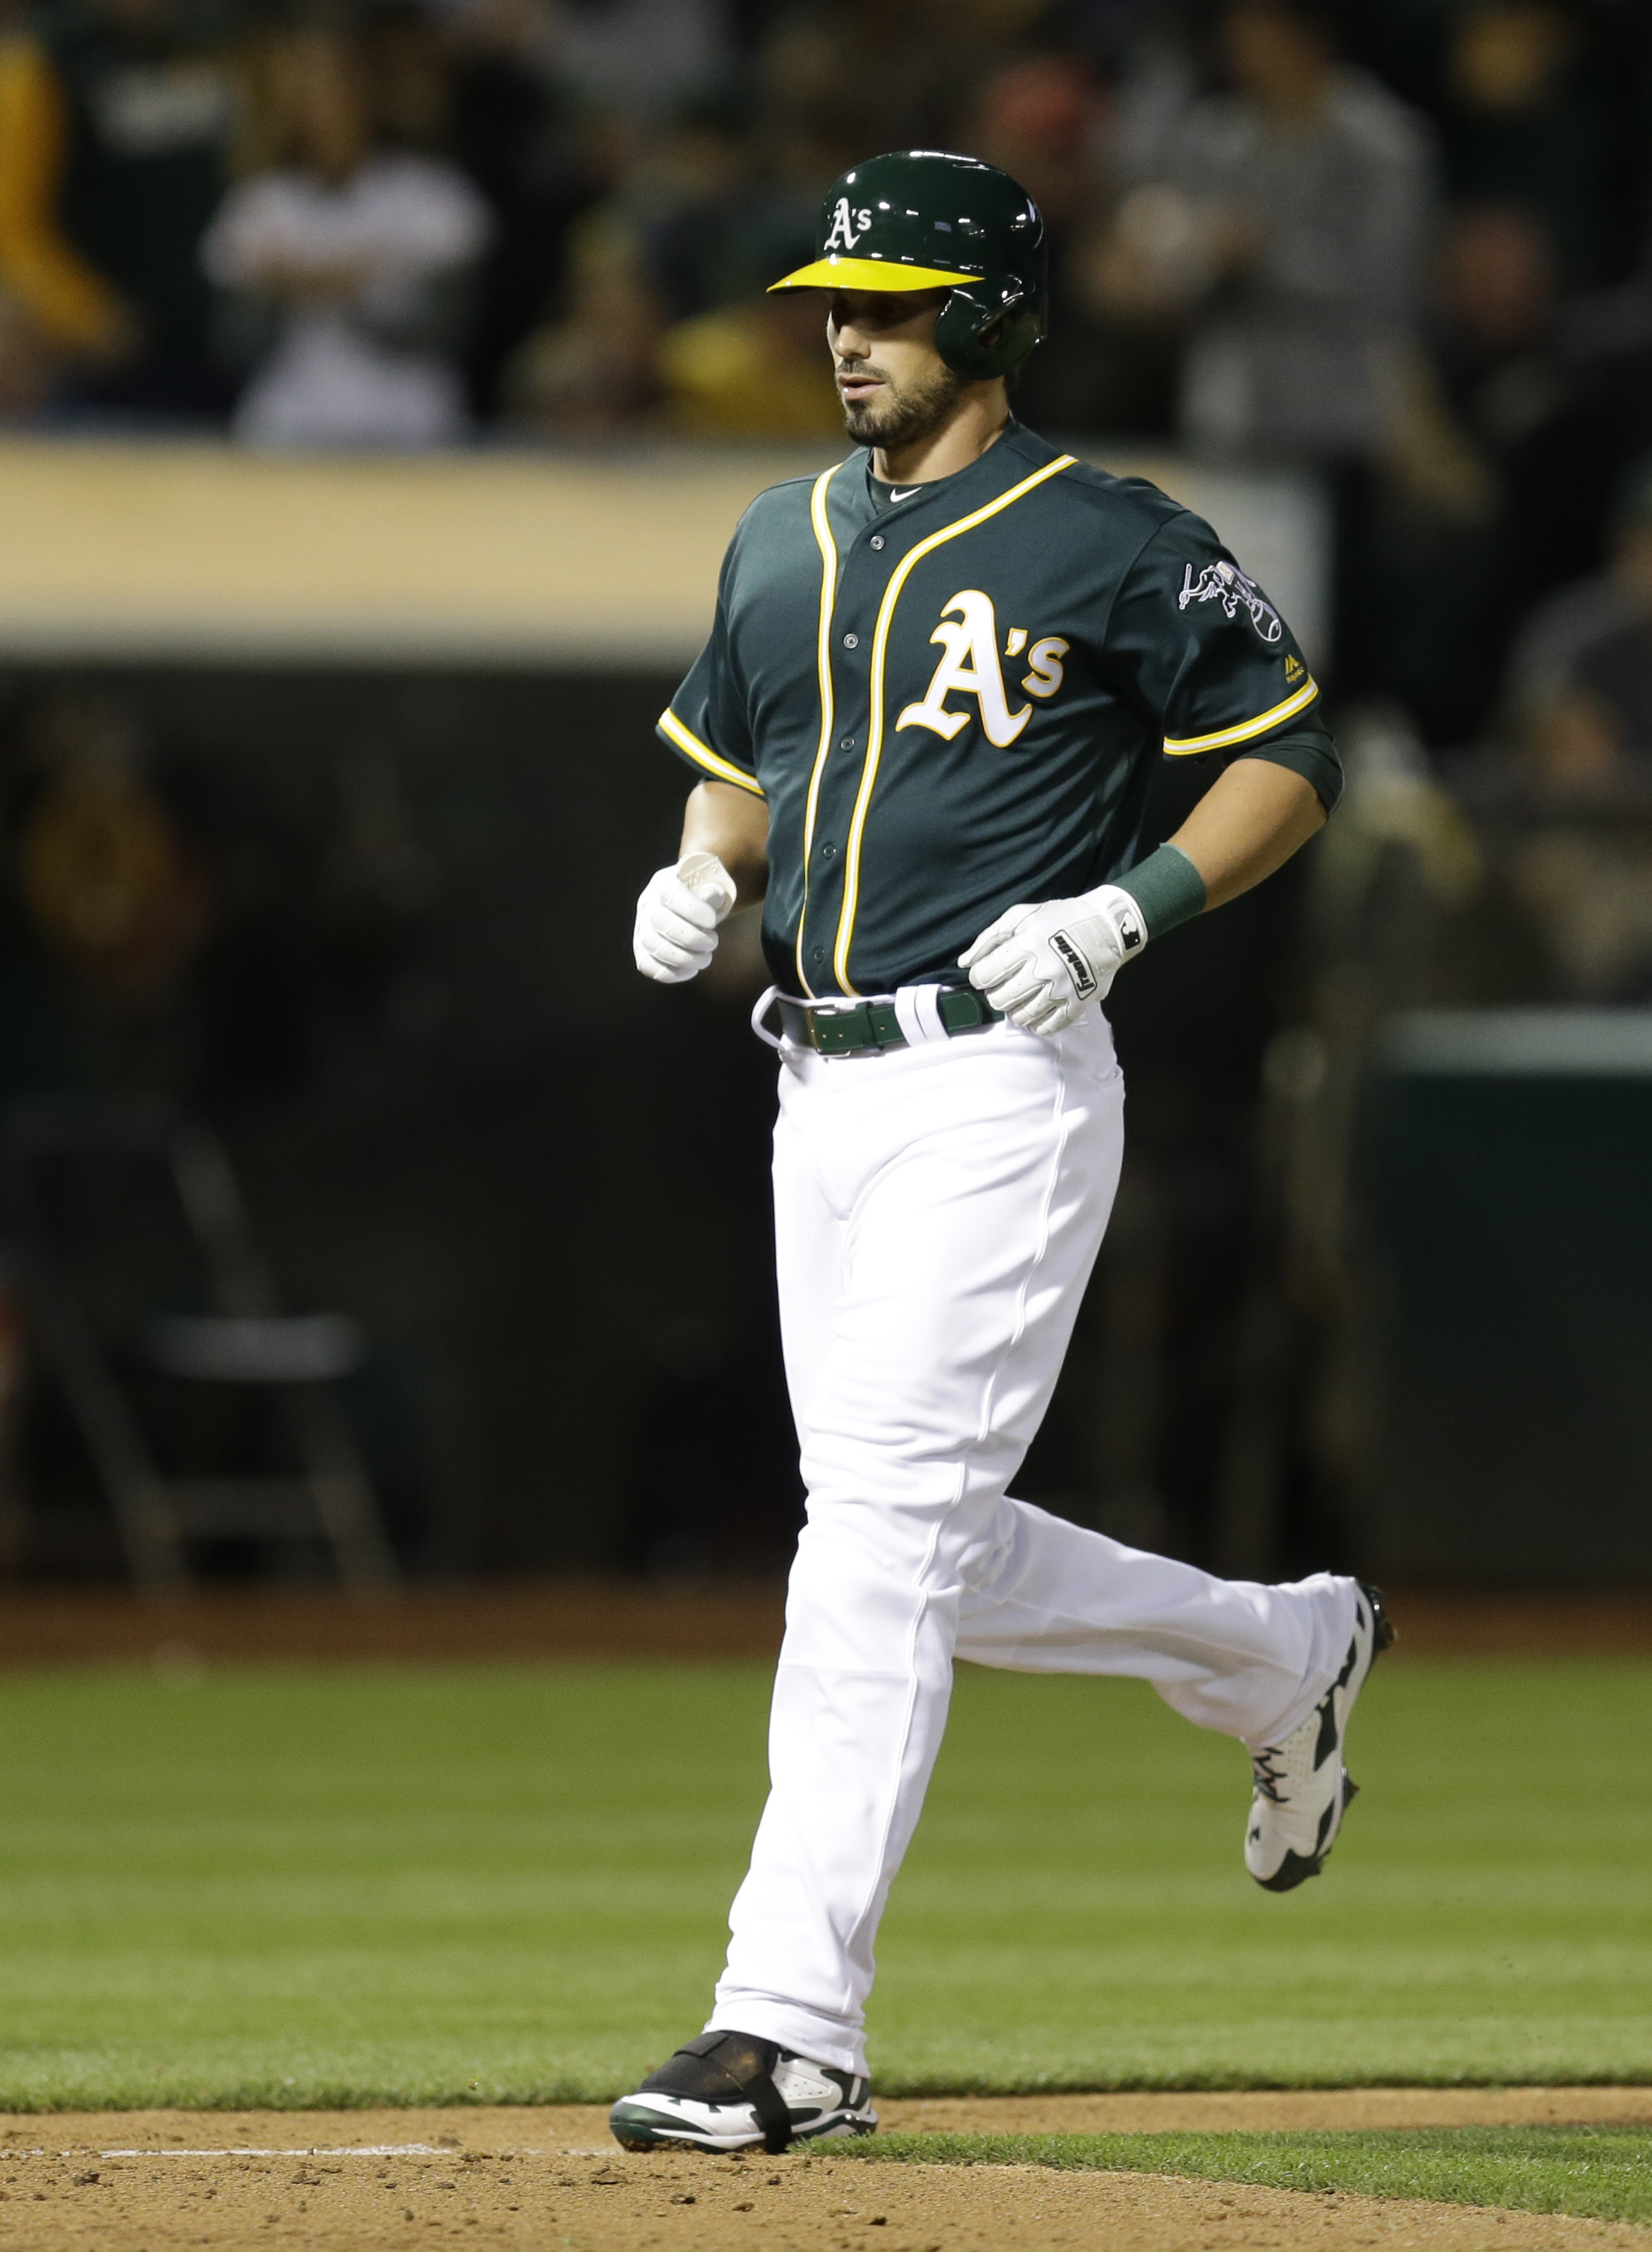 Oakland Athletics' Brett Eibner runs the bases after hitting a home run off Chicago Cubs' Jon Lester during the sixth inning of a baseball game Friday, Aug. 5, 2016, in Oakland, Calif. (AP Photo/Ben Margot)